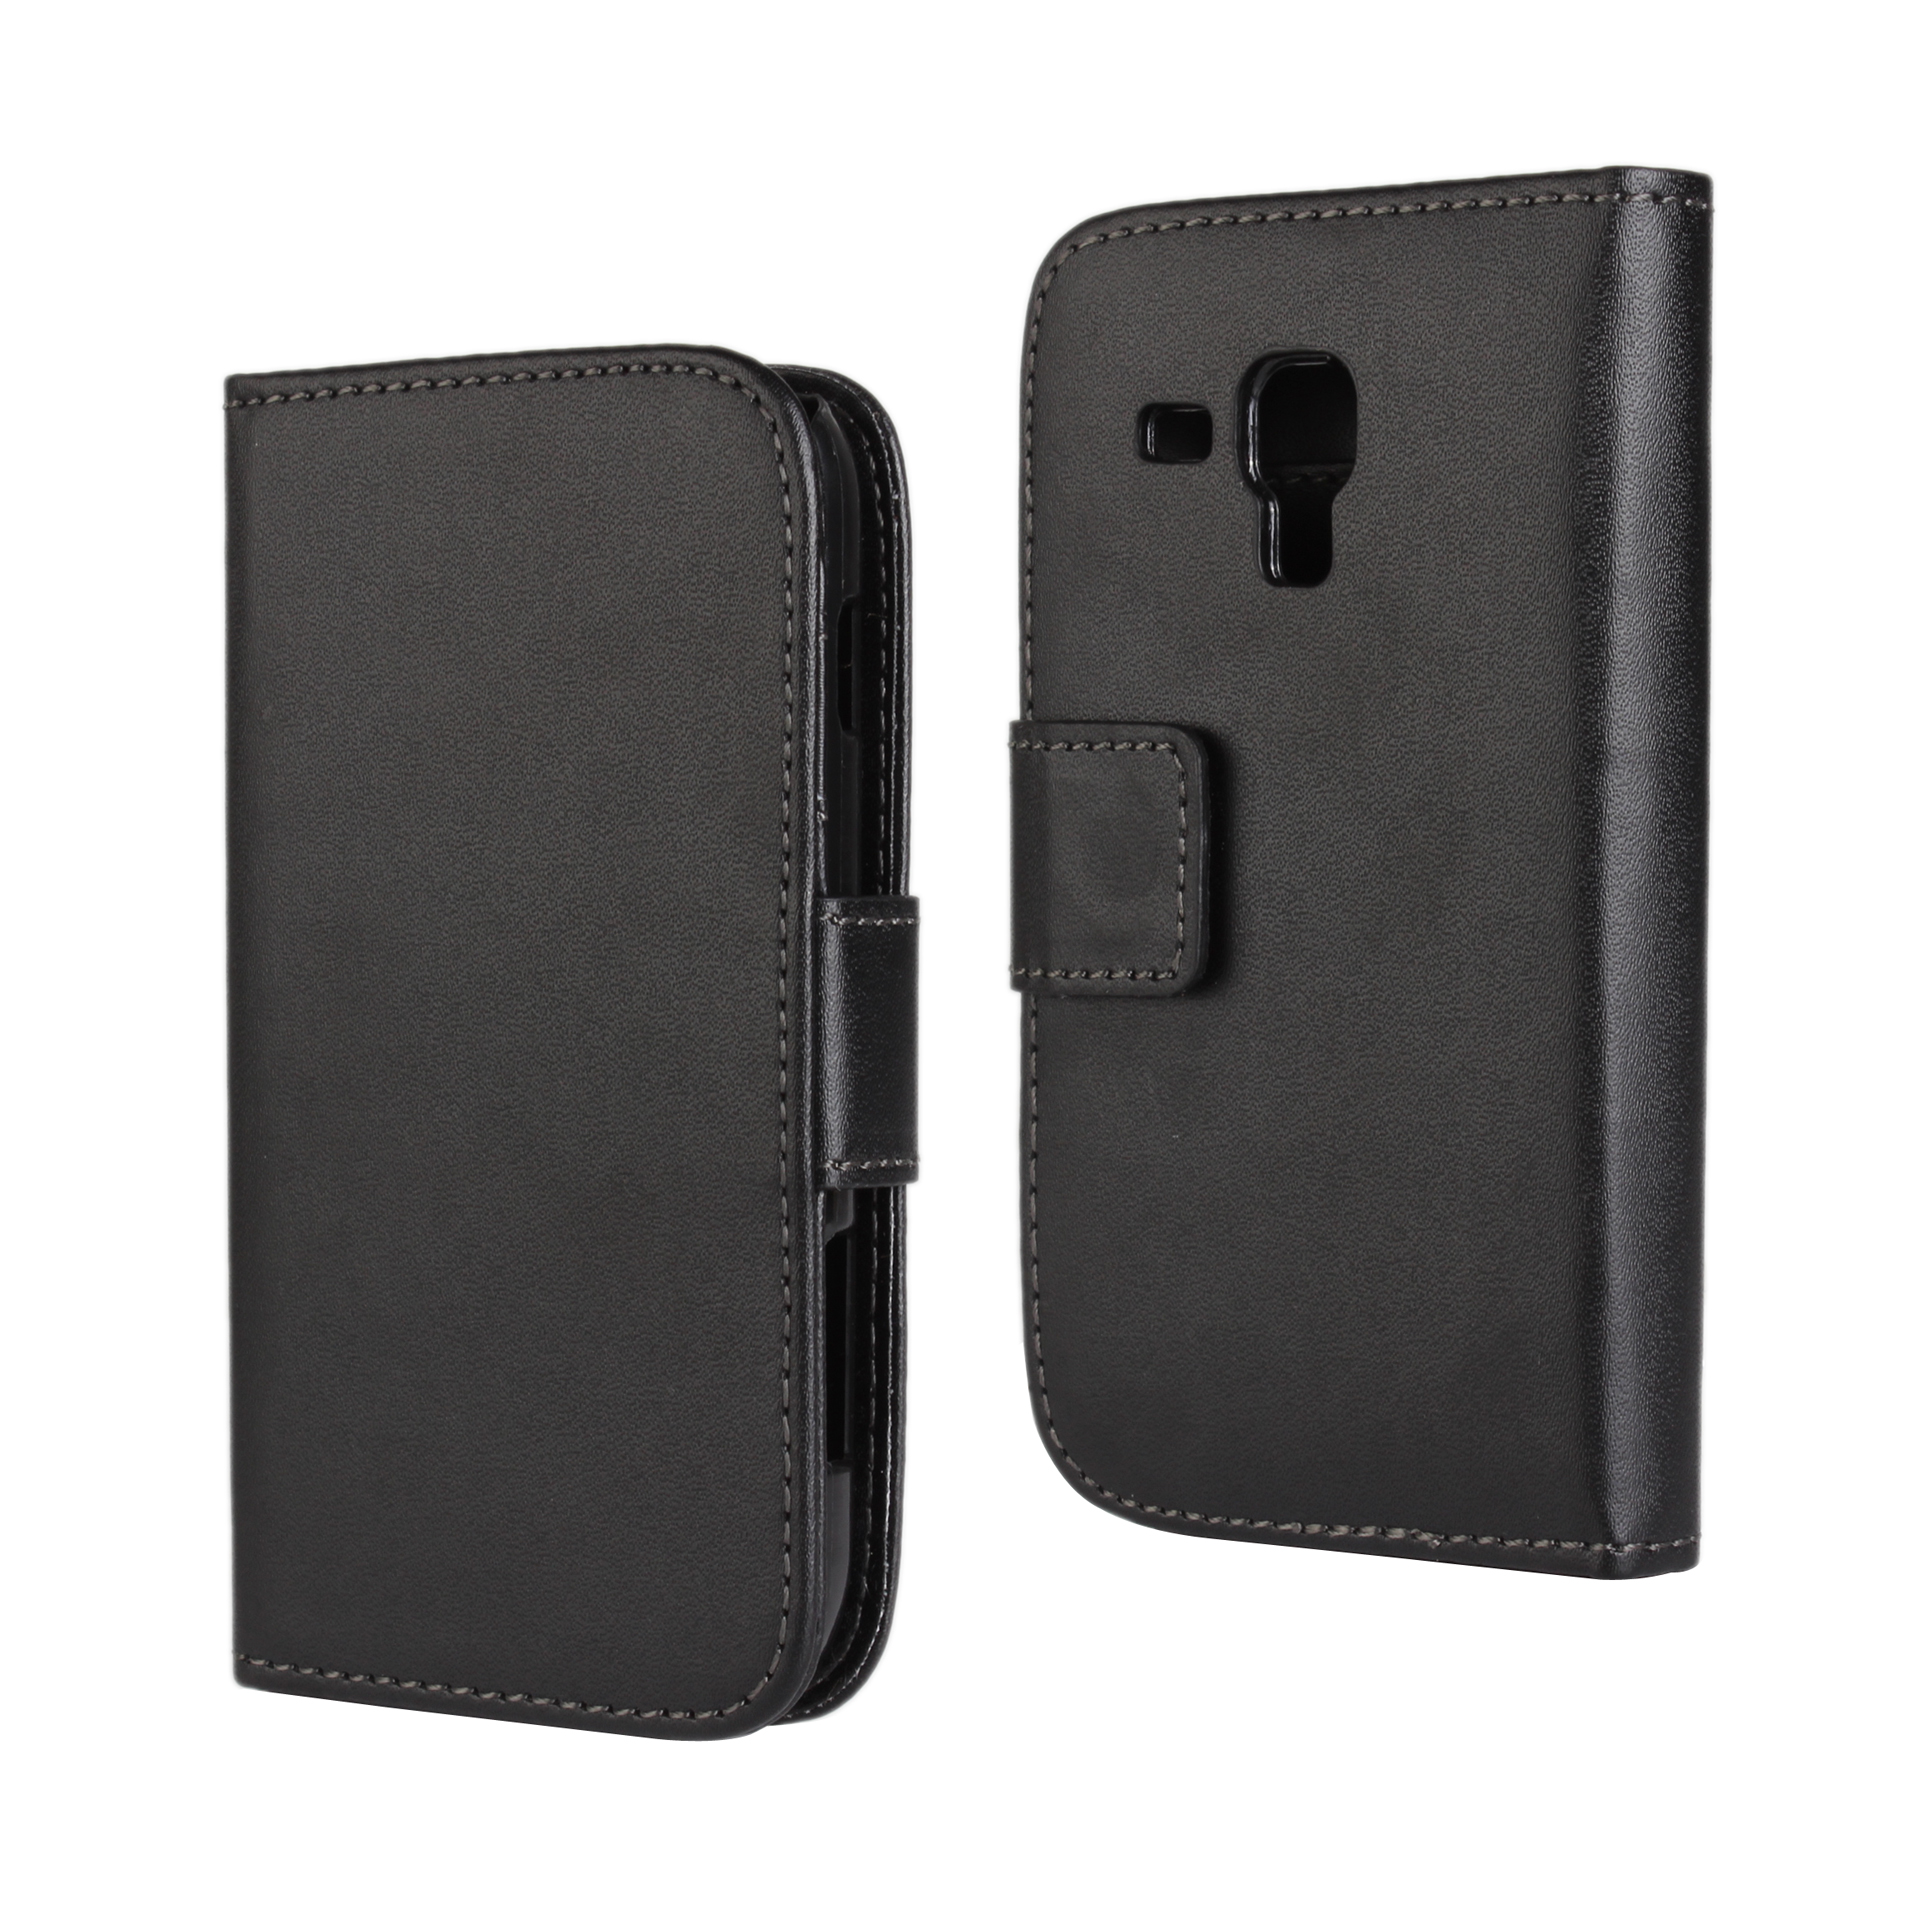 Samsung galaxy s duos s7562 full phone specifications - Cover Case For Samsung Galaxy S Duos S7562 Wallet Flip Pu Leather Book Phone Bag Classical